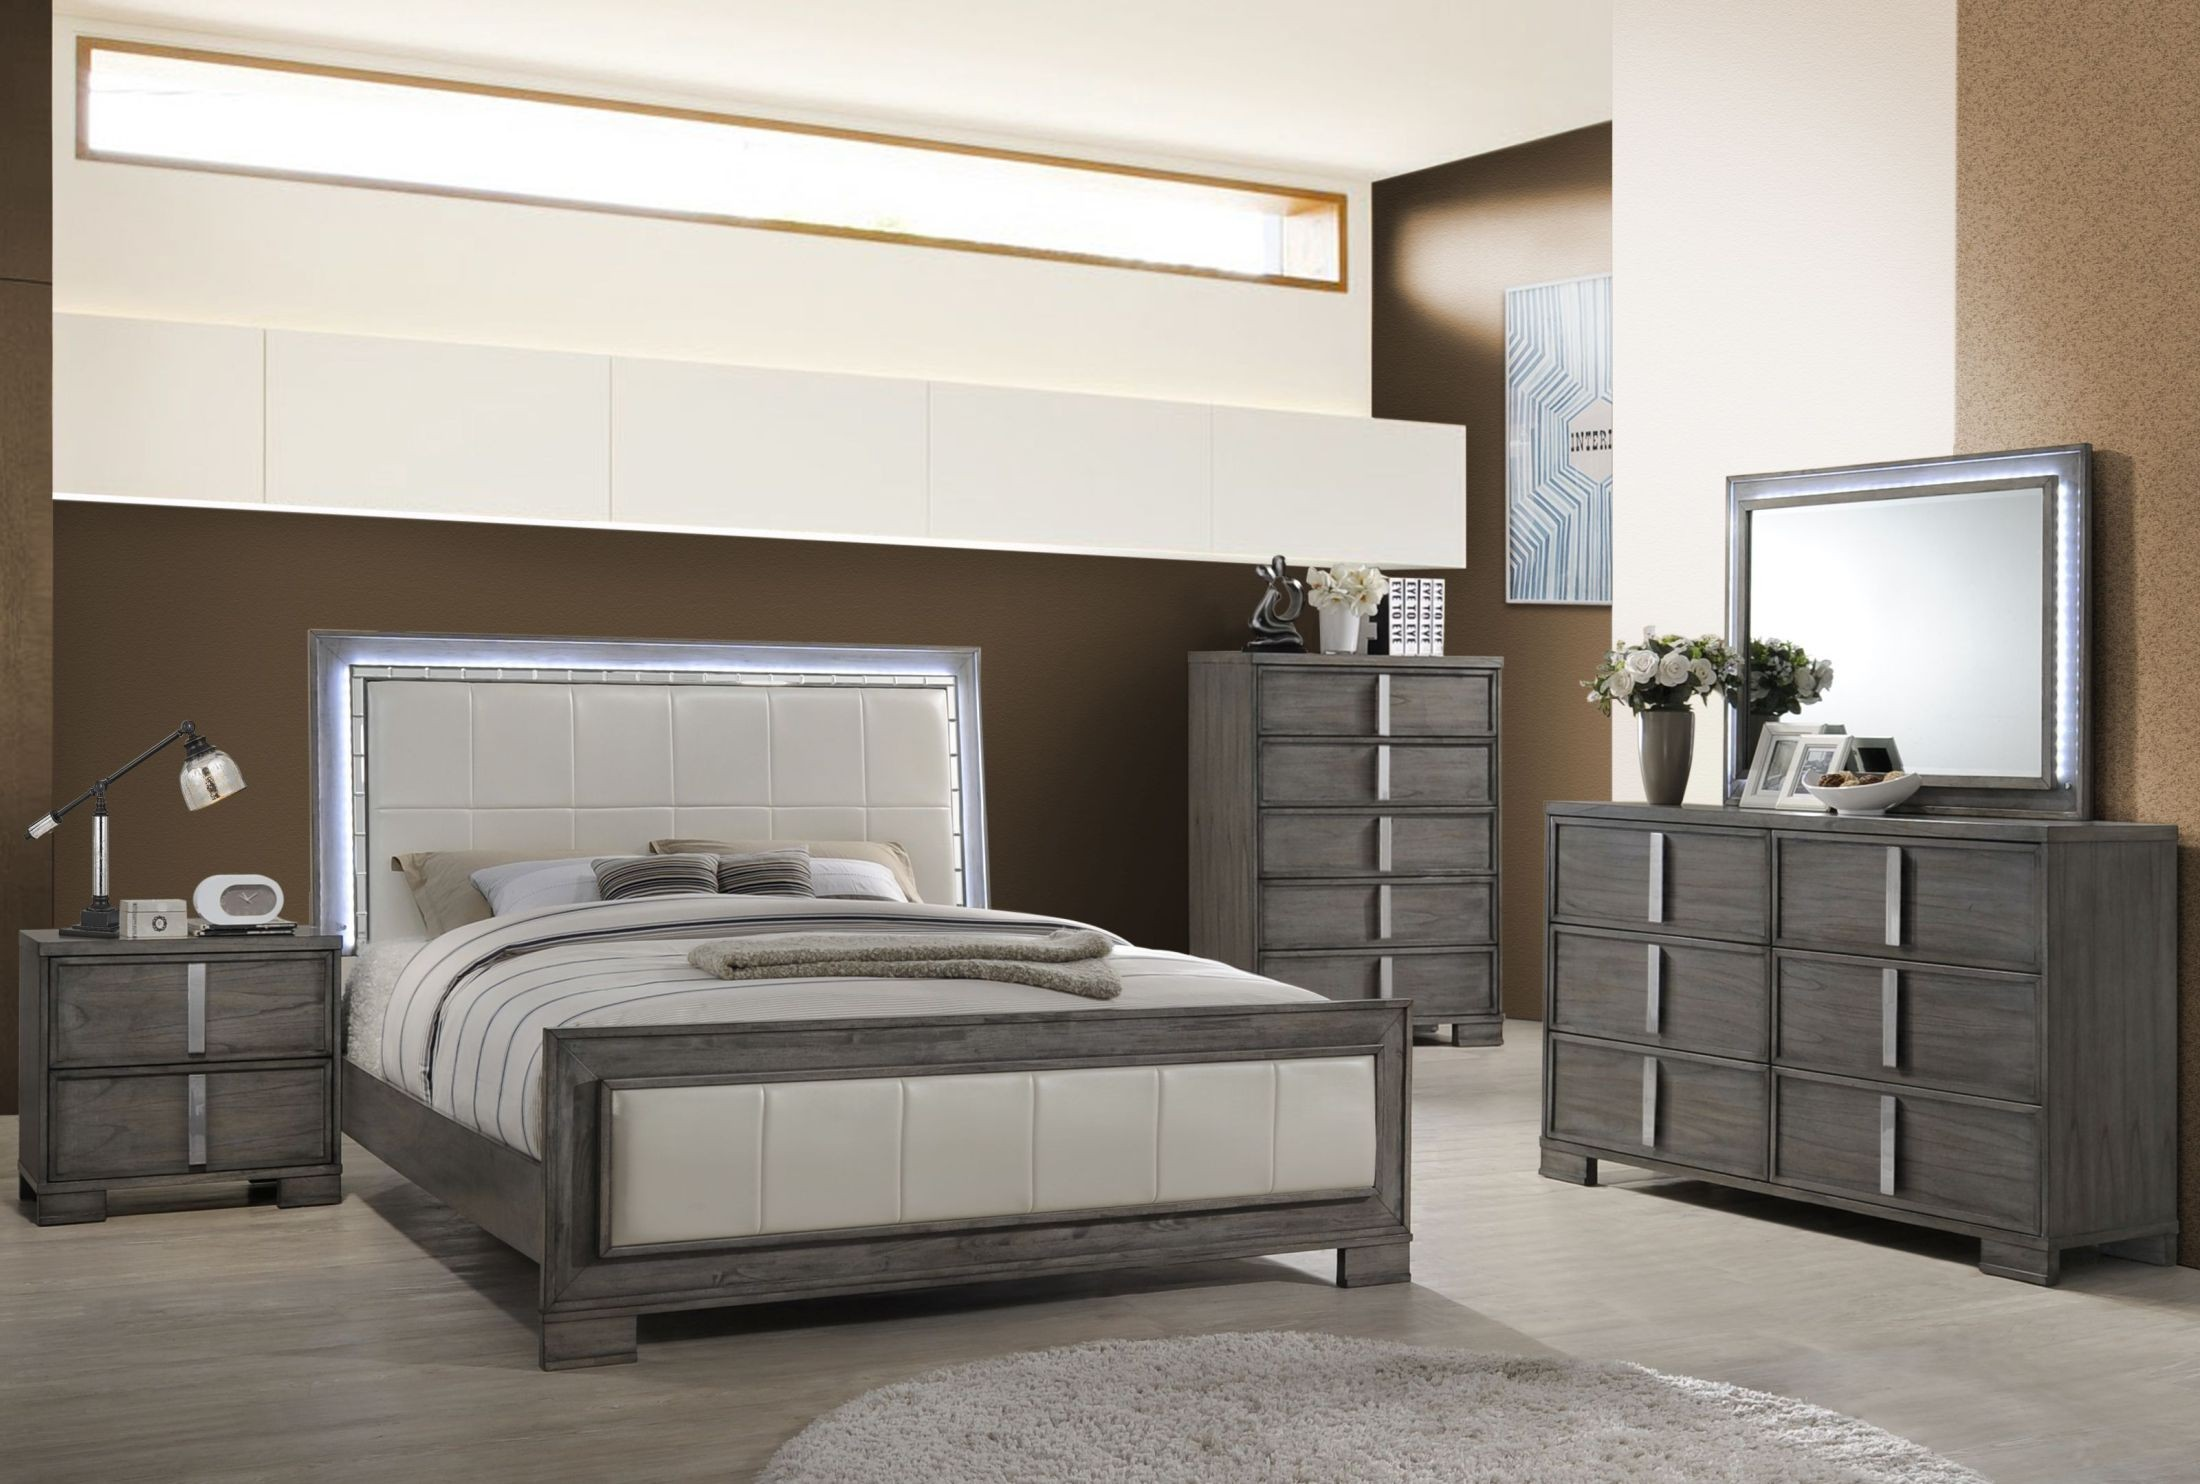 edgewater gray panel bedroom set from new classic coleman furniture. Black Bedroom Furniture Sets. Home Design Ideas